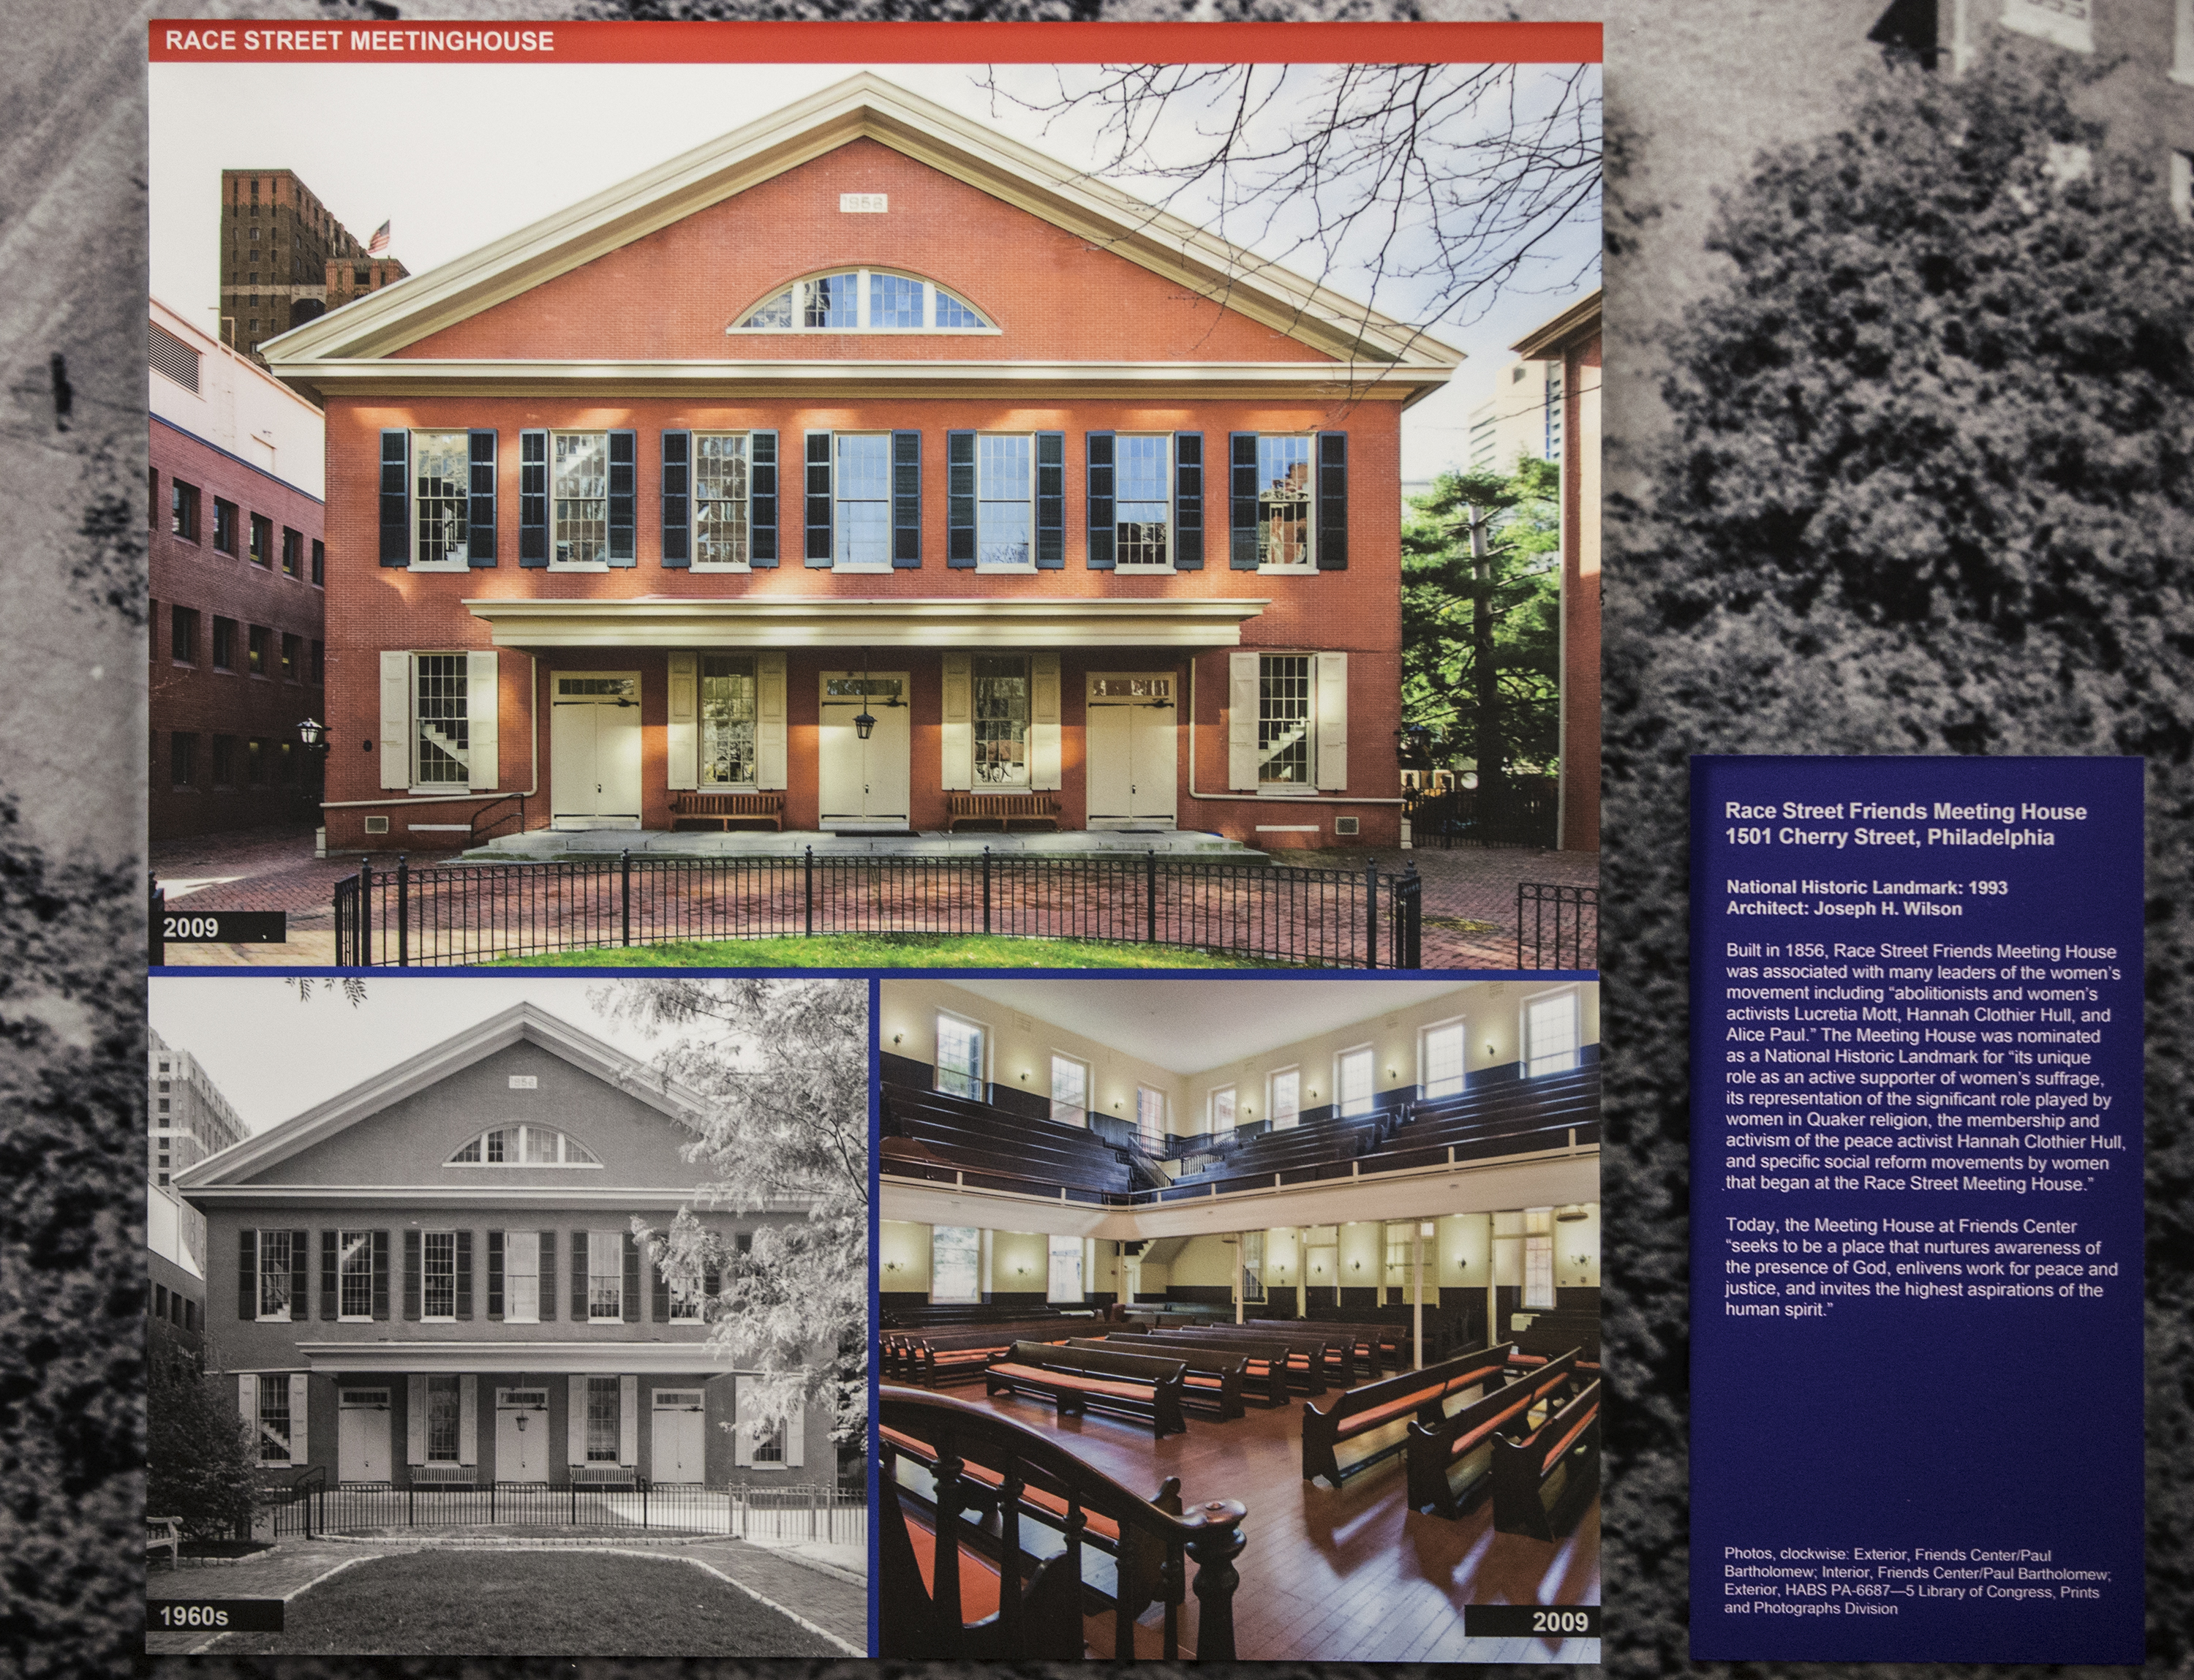 Detail of the exhibit that features the Race Street Friends Meeting House.